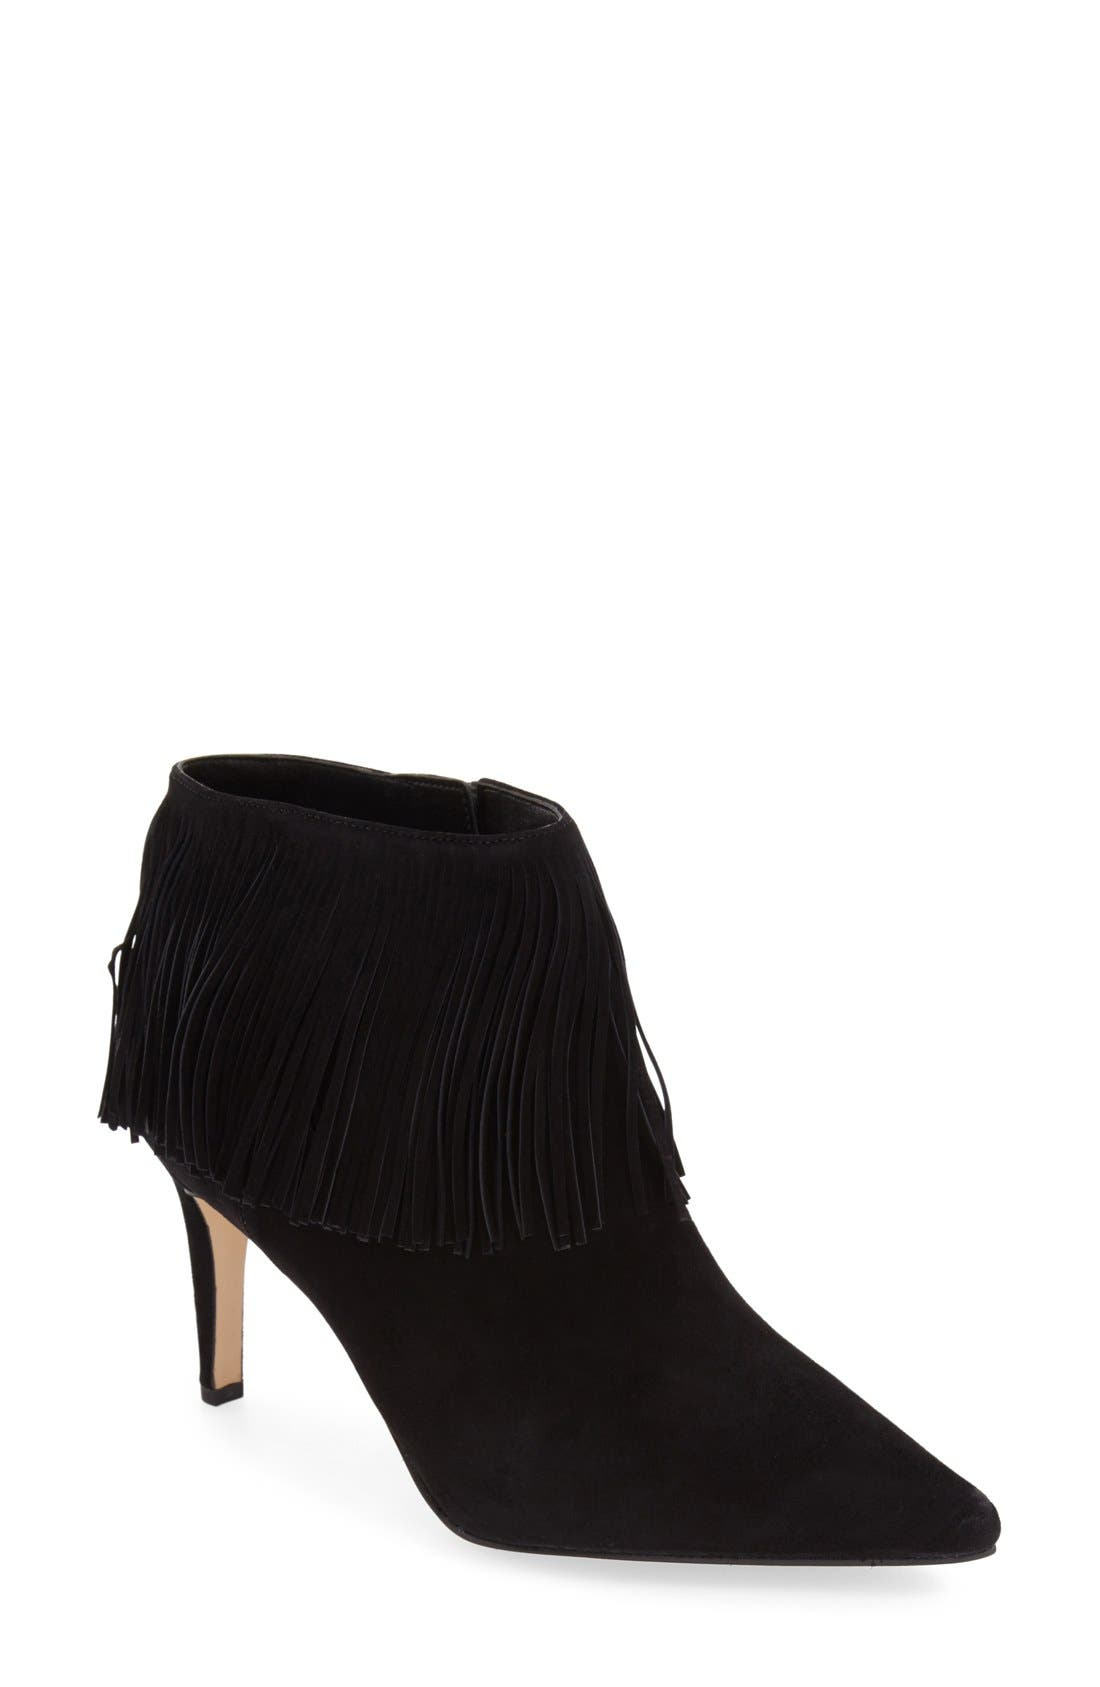 SAM EDELMAN 'Kandice' Fringed Suede Pointy Toe Bootie, Main, color, 002